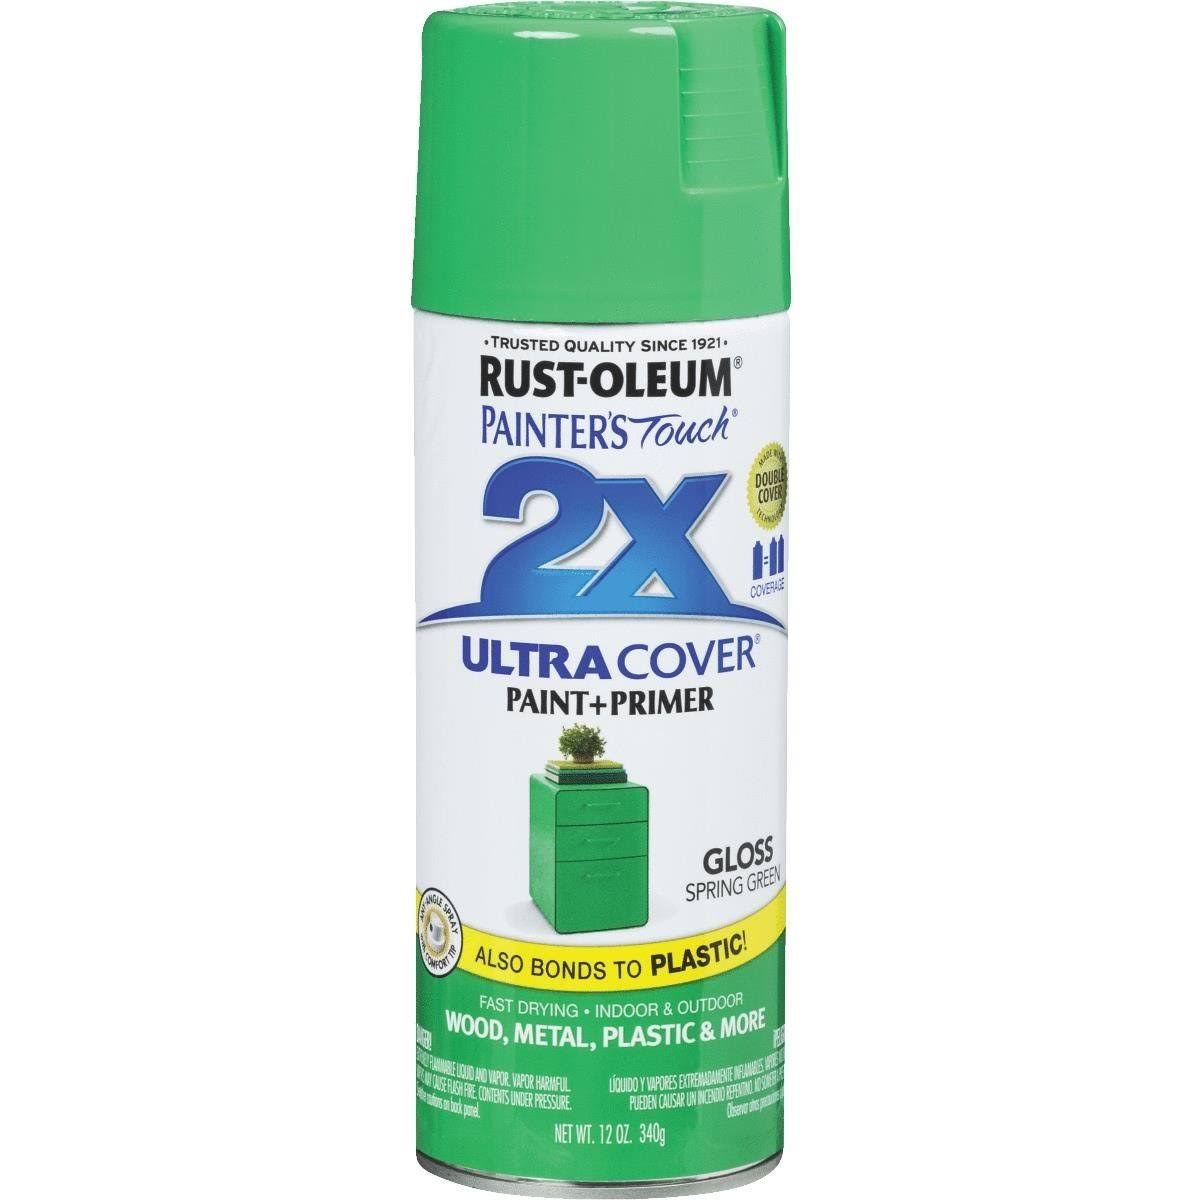 Rust-Oleum Painter's Touch 2X Ultra Cover Paint & Primer - Gloss Spring Green, 12oz